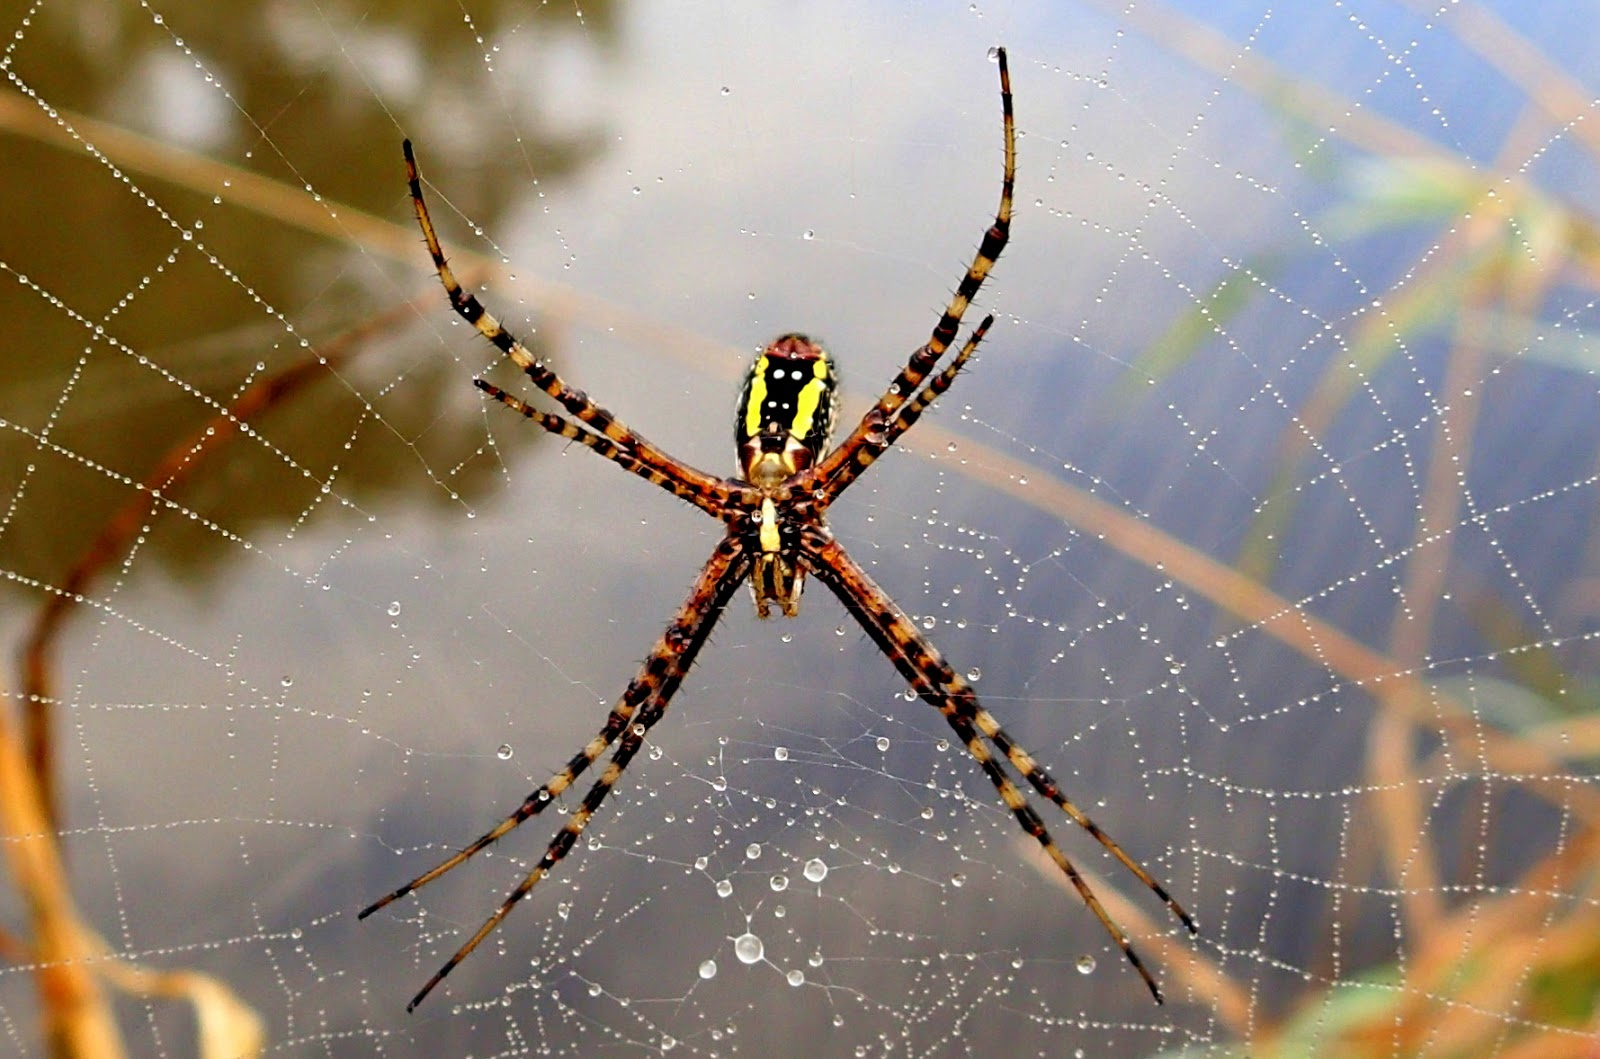 The Stream Of Time Yellow And Black Garden Spiders